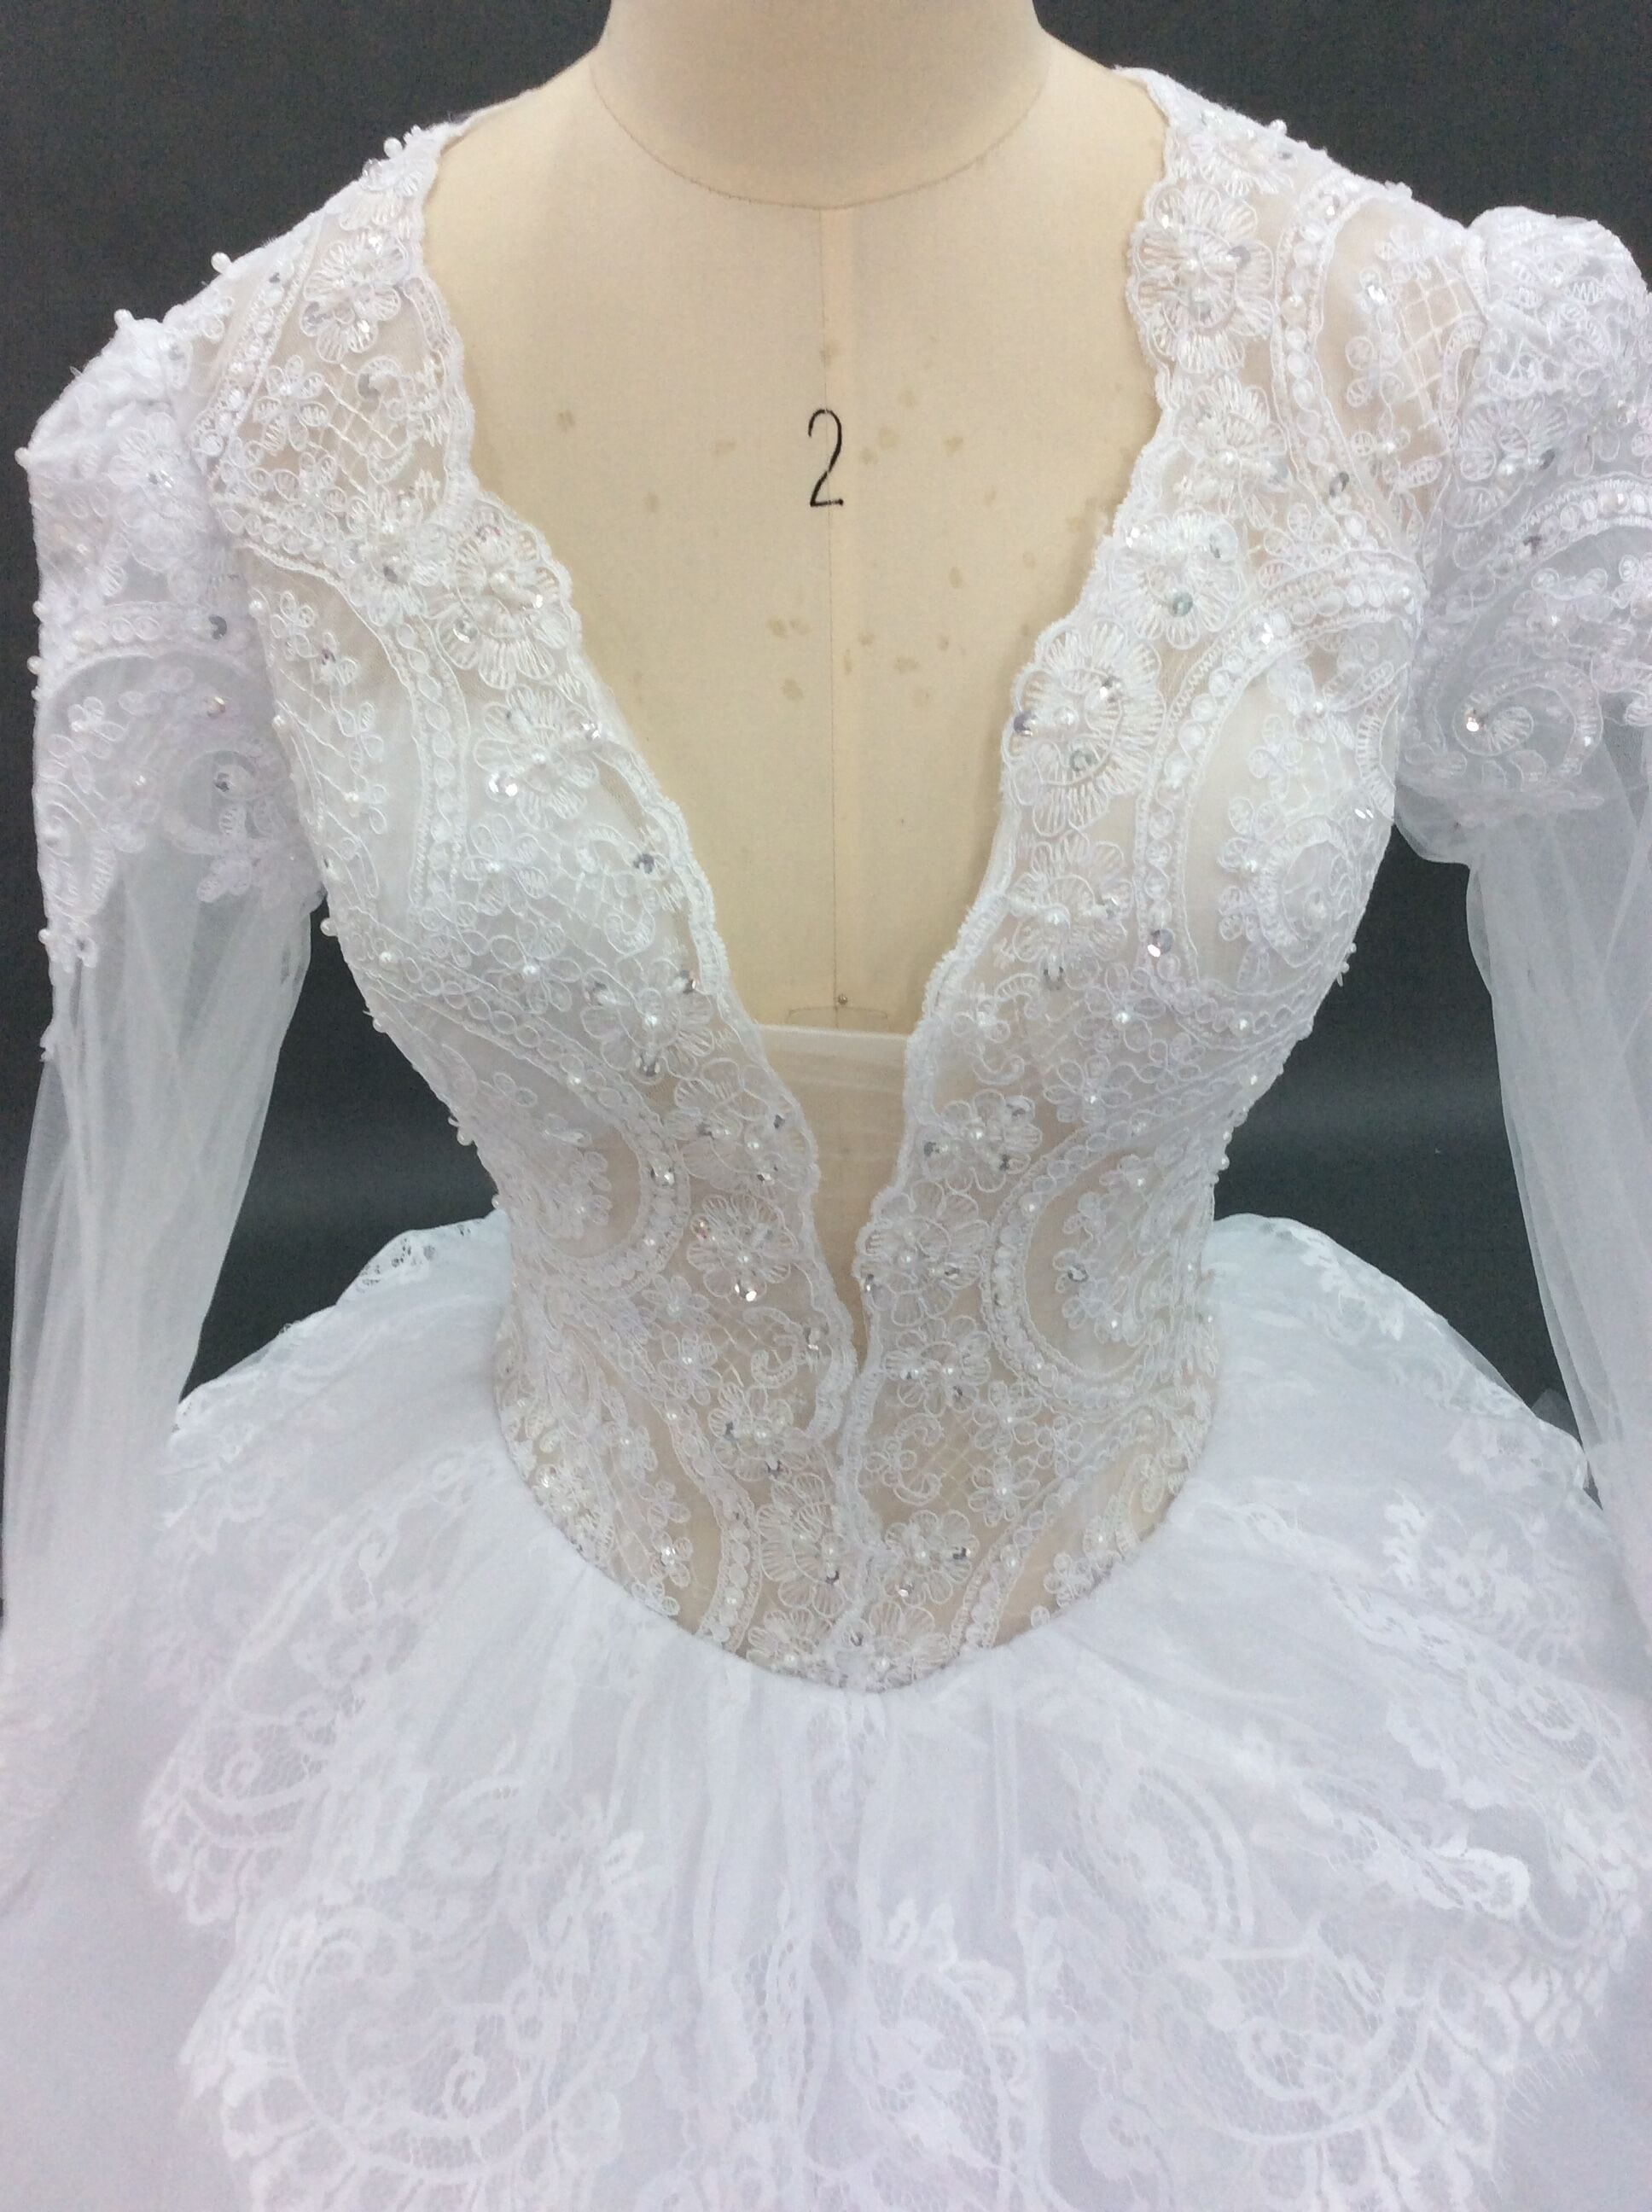 Custom long sleeve bridal gown inspired by Pnina Tornai